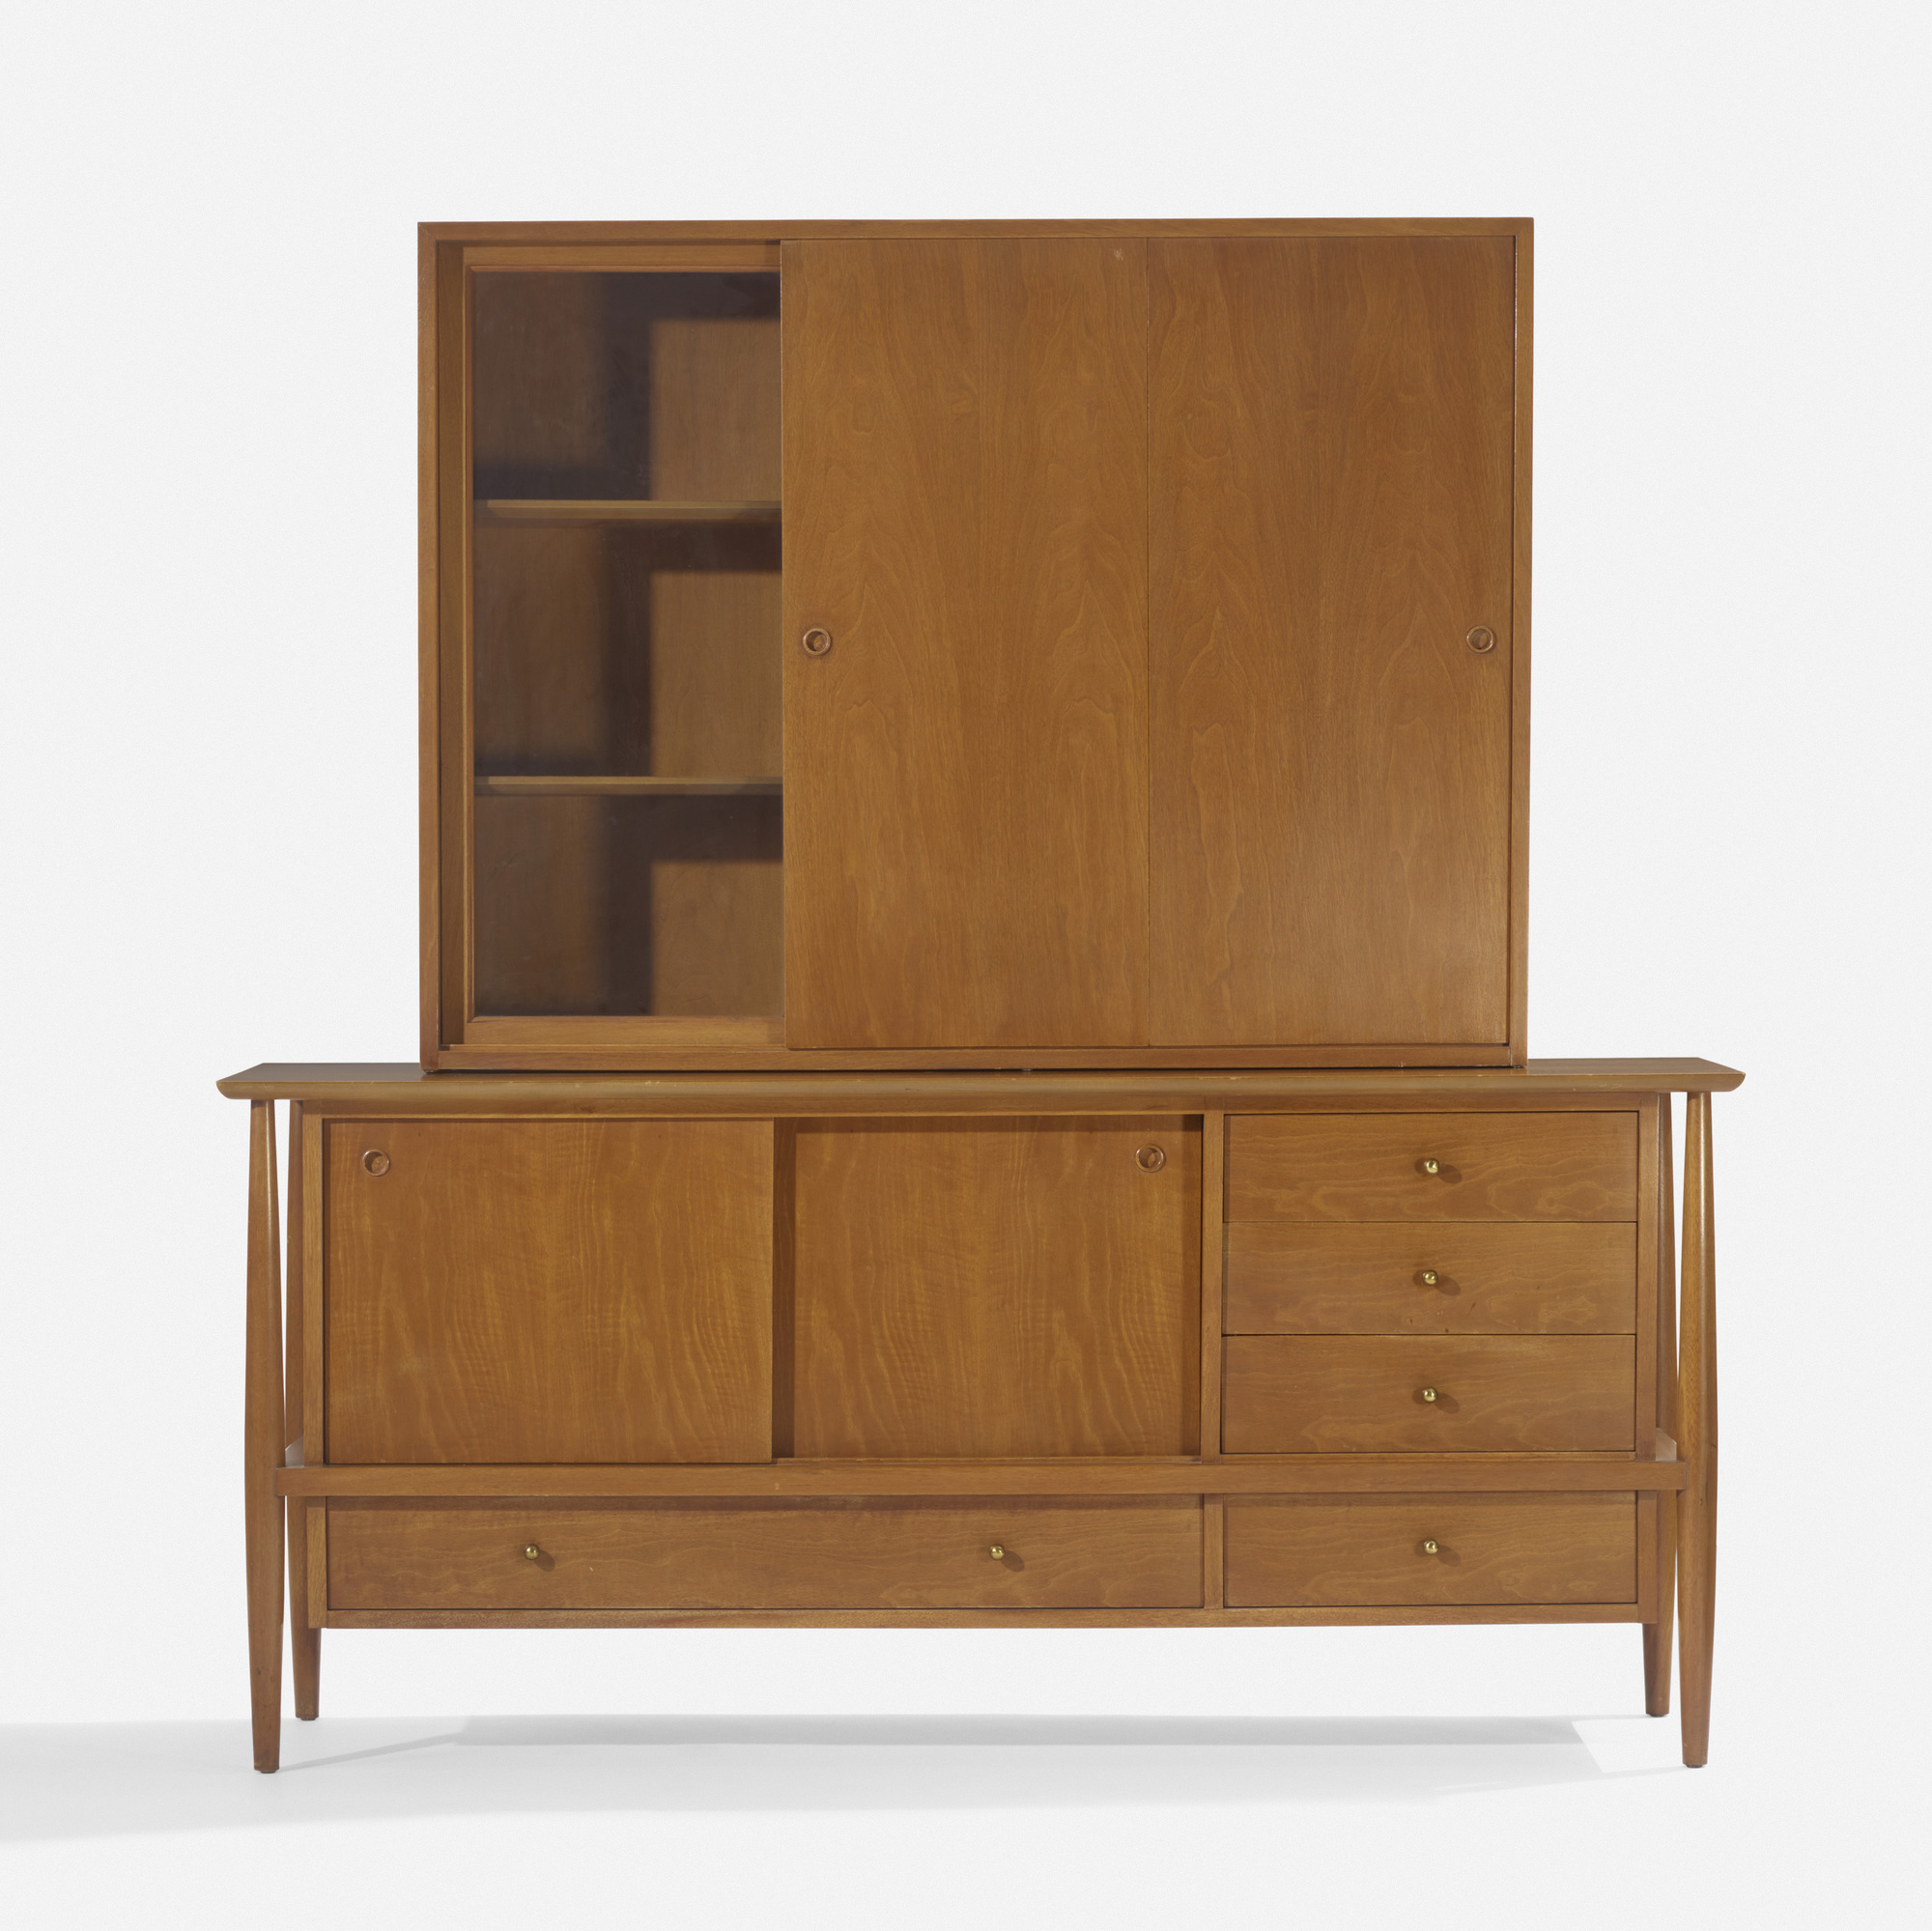 137: In the manner of Finn Juhl / credenza and cabinet (1 of 3)